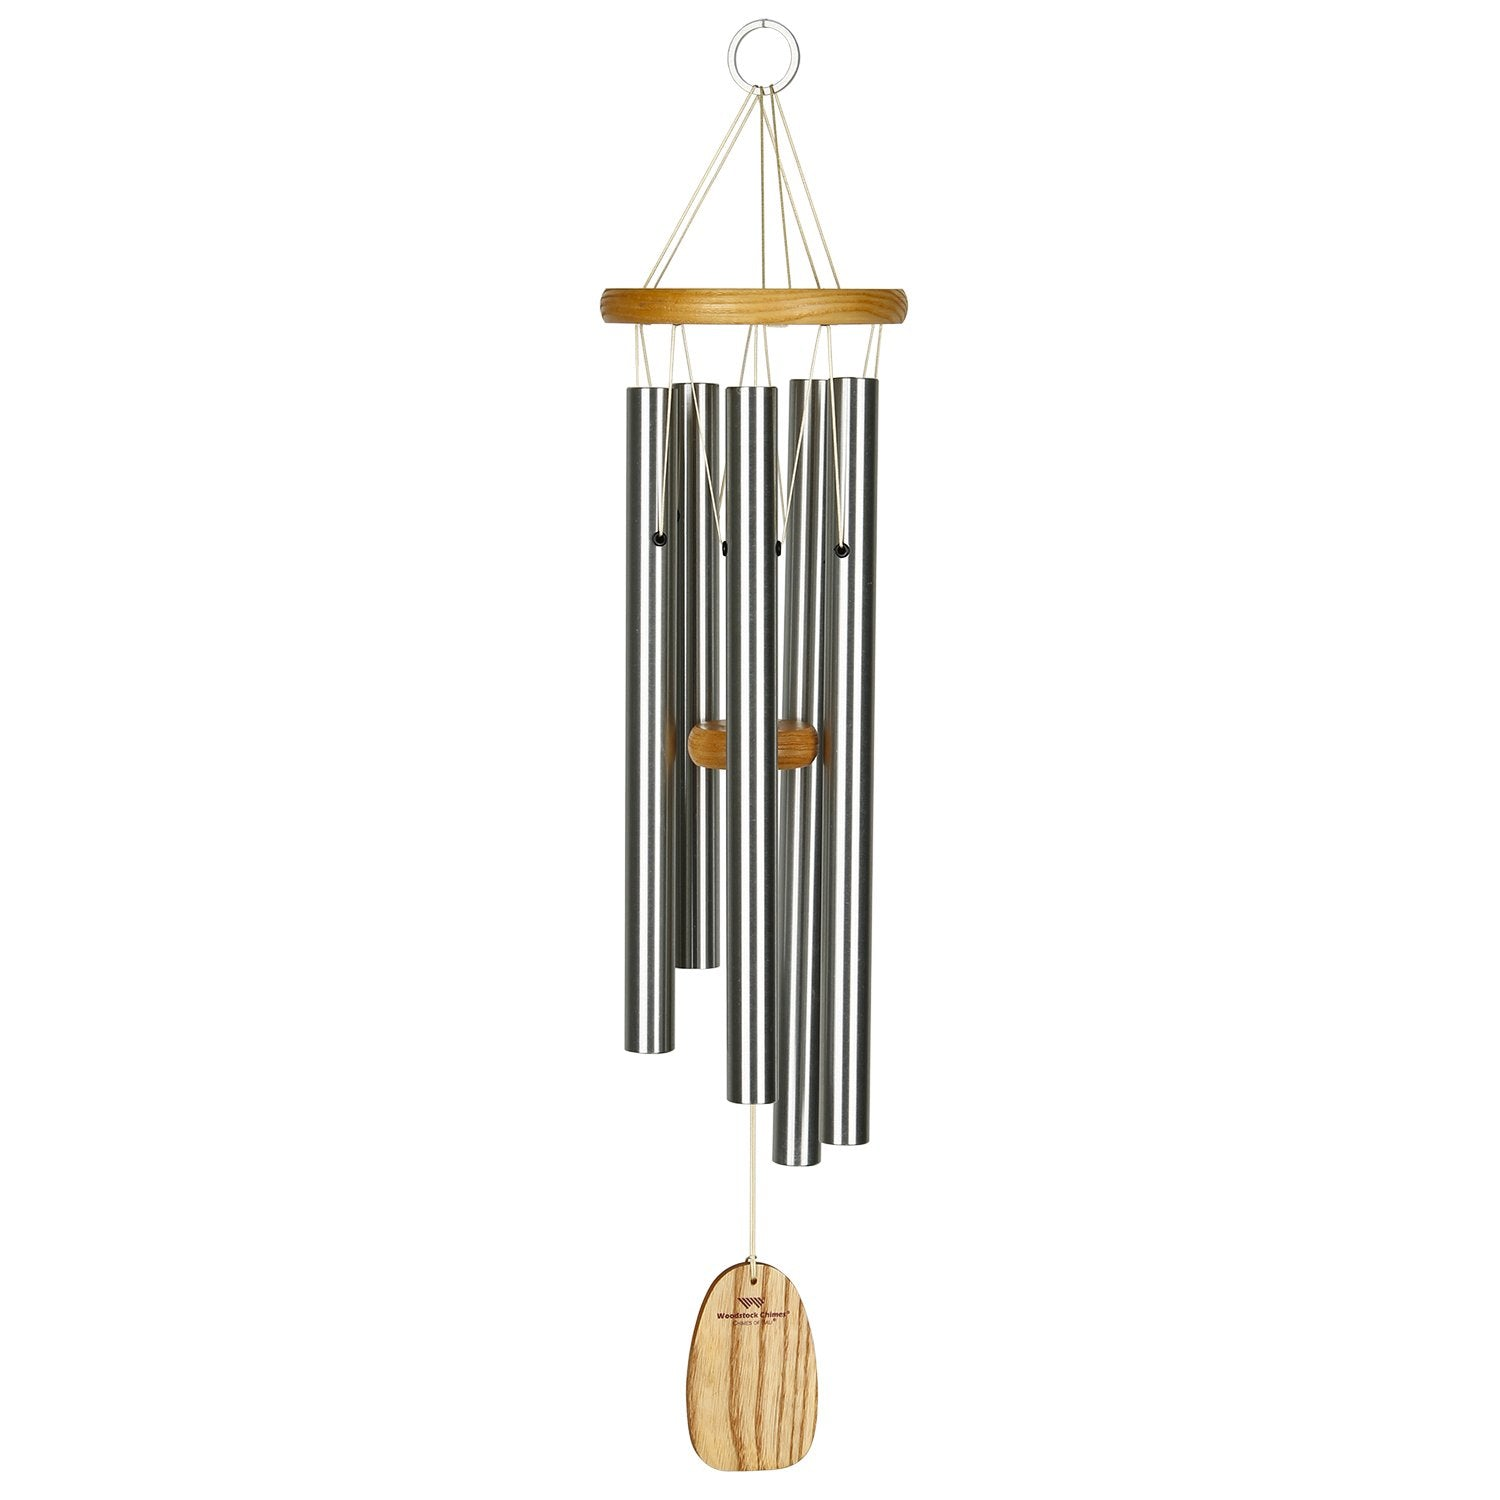 Chimes of Bali full product image